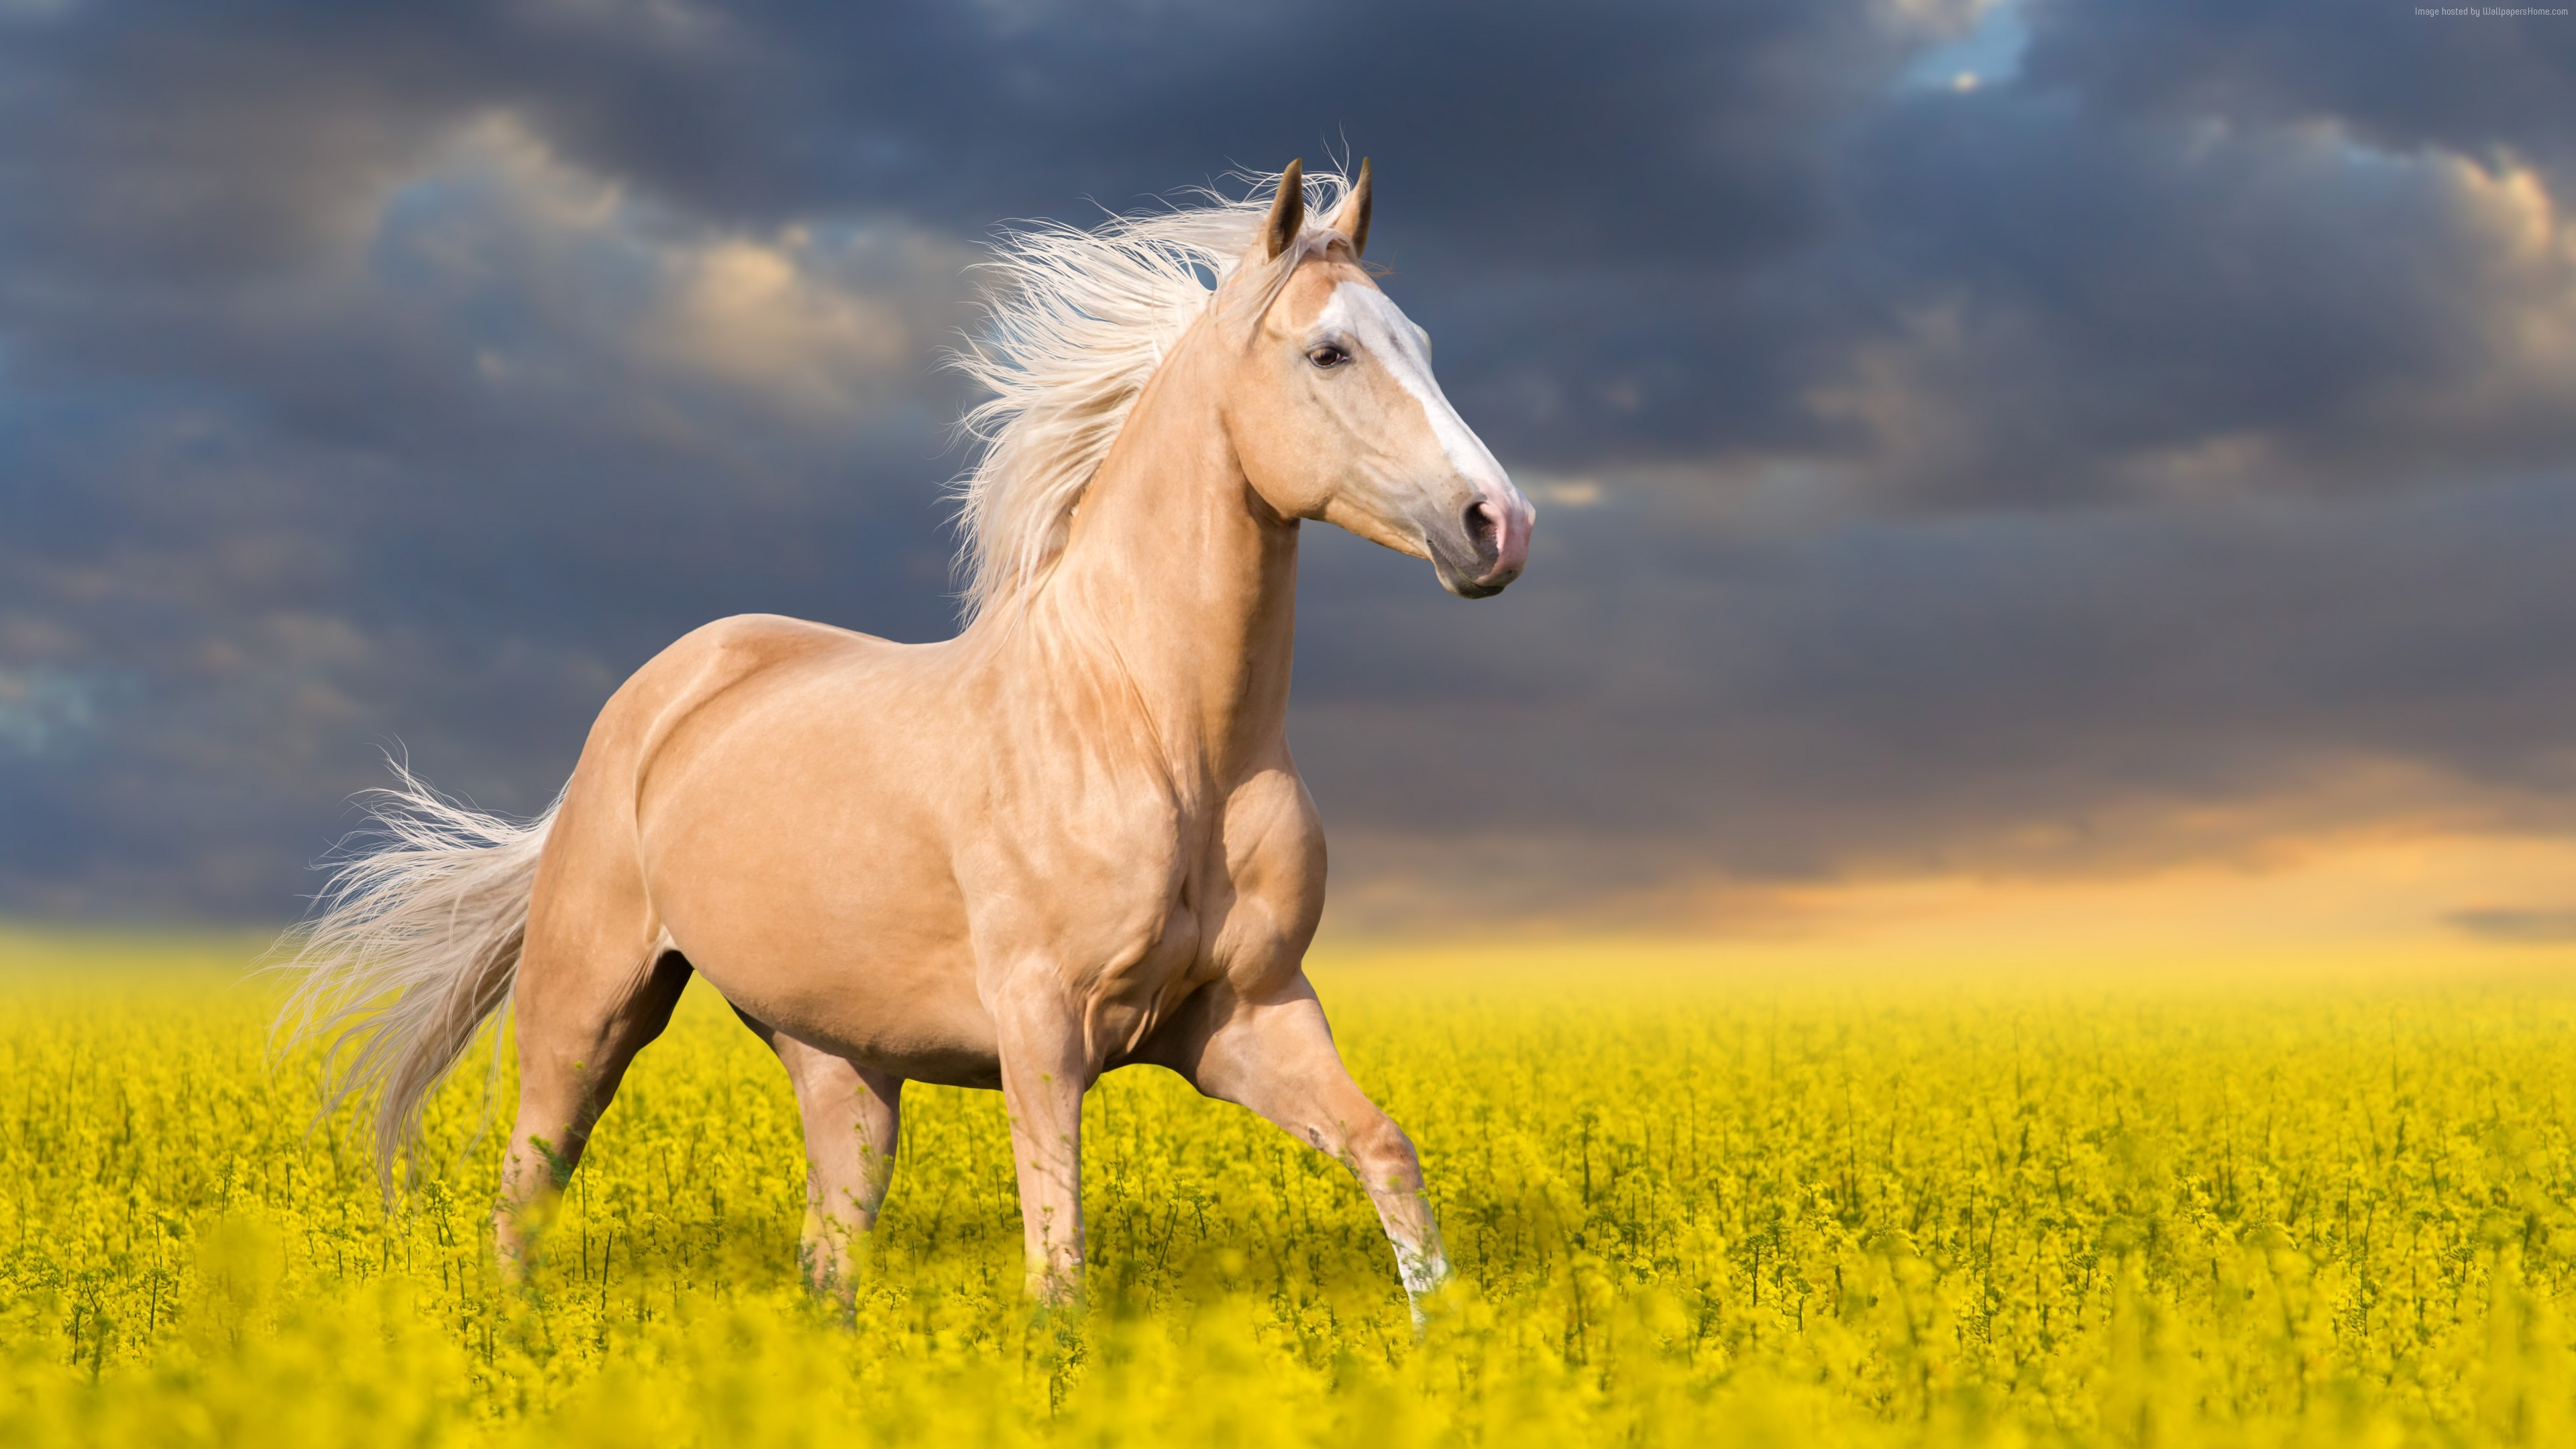 horse cute wallpapers animals 4k resolution background 5k